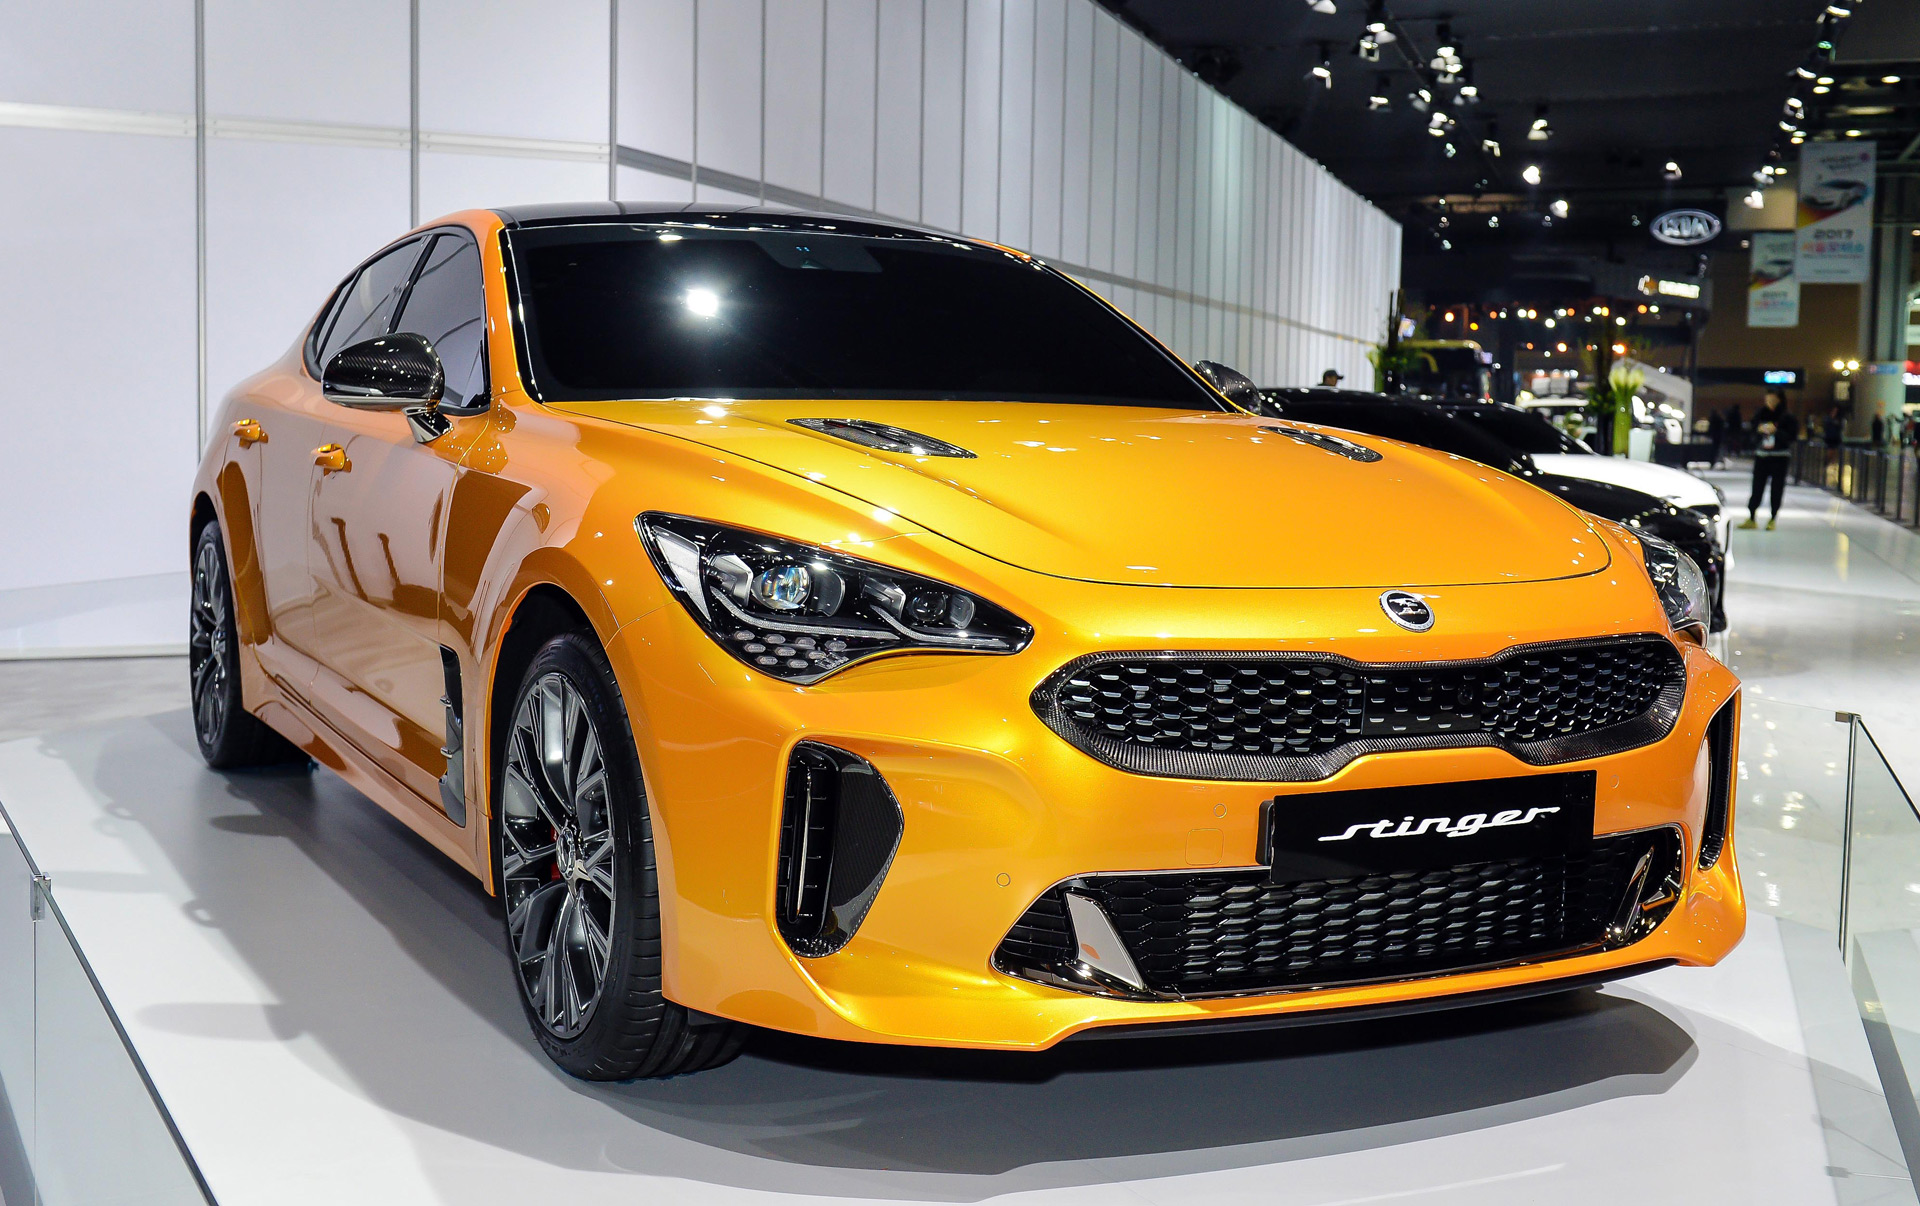 Cherokee For Less >> Kia Stinger 0-60 time under 4.9 seconds